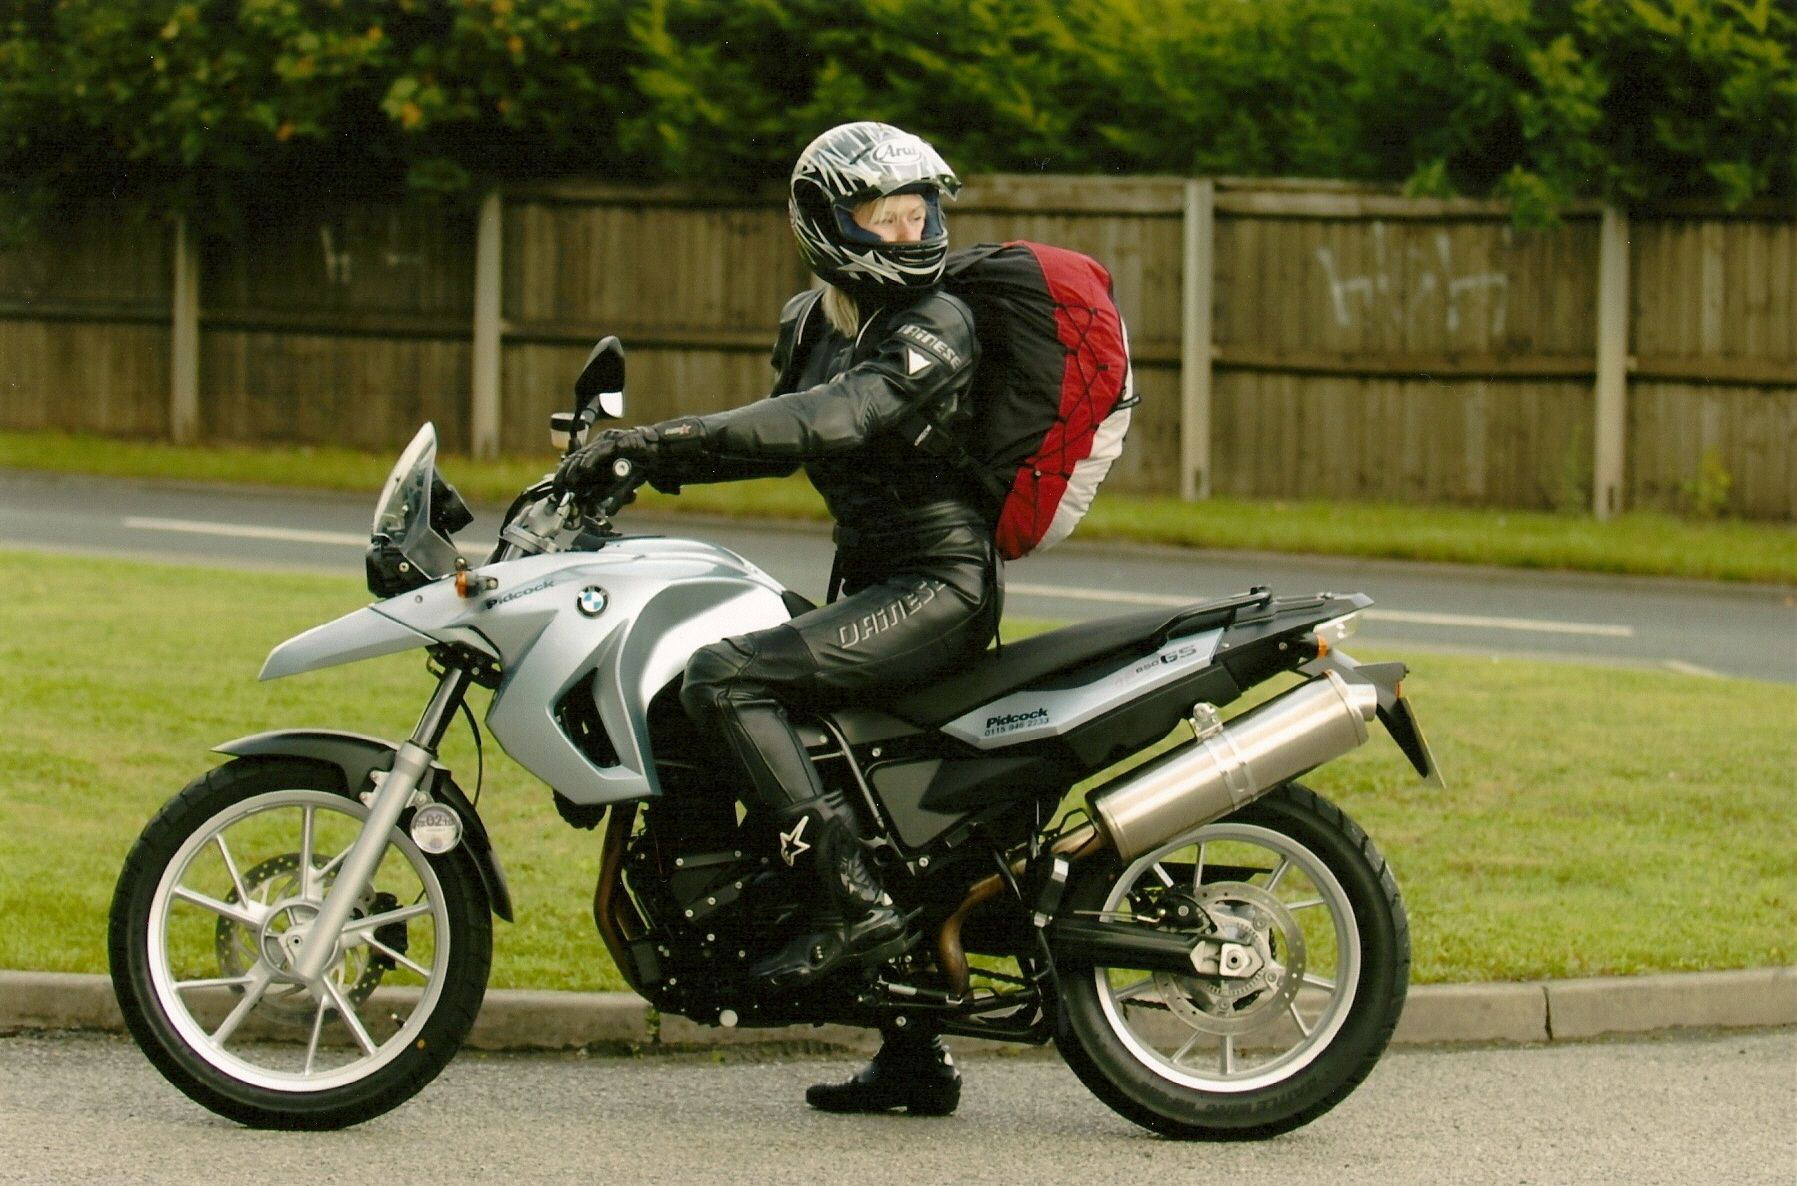 ready to ride to mt blanc on my bmw gs 650 with my ozone lightweight paraglider on my back in. Black Bedroom Furniture Sets. Home Design Ideas